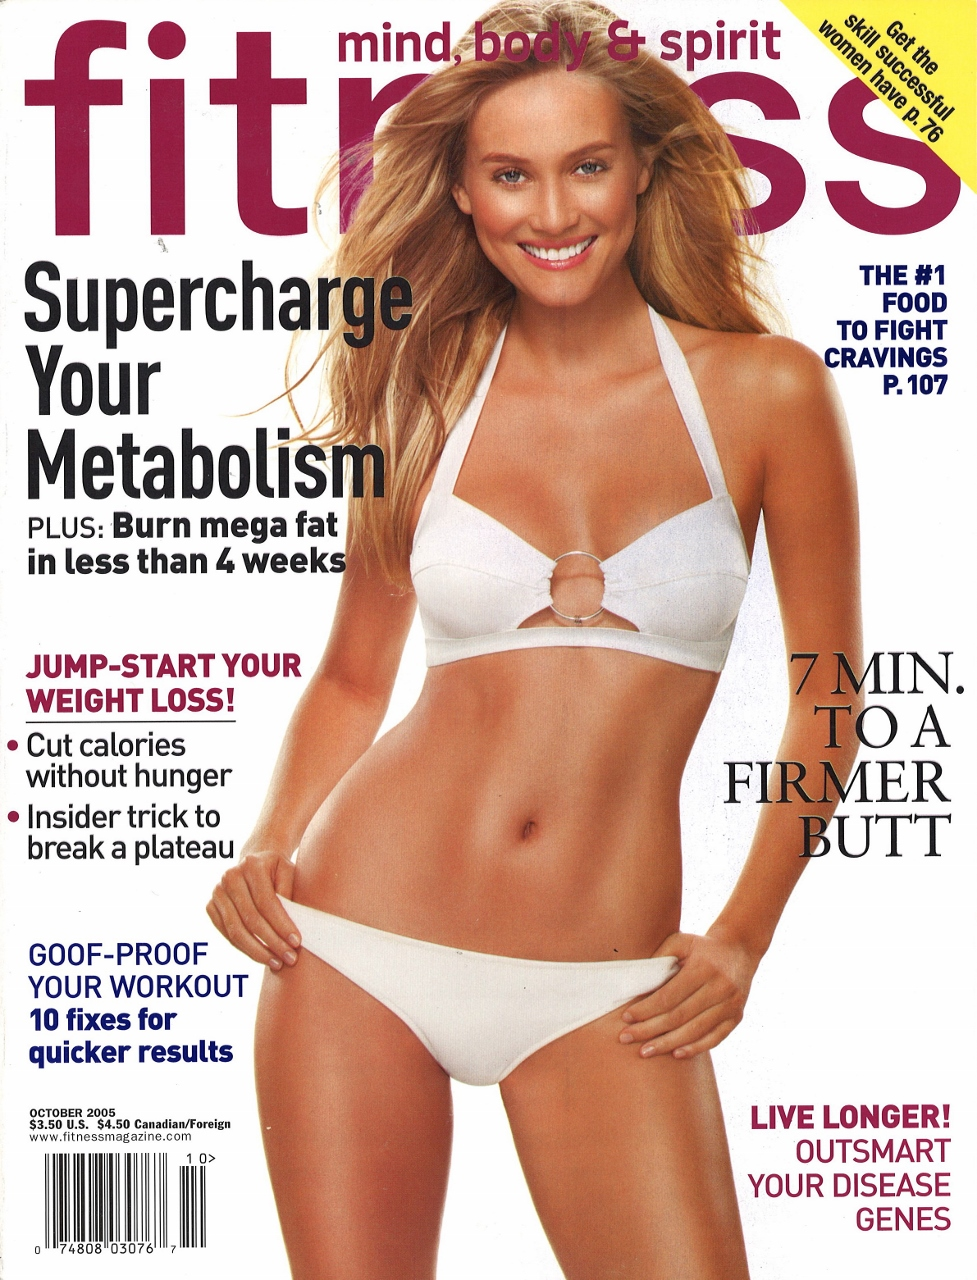 October 2005 Fitness Cover